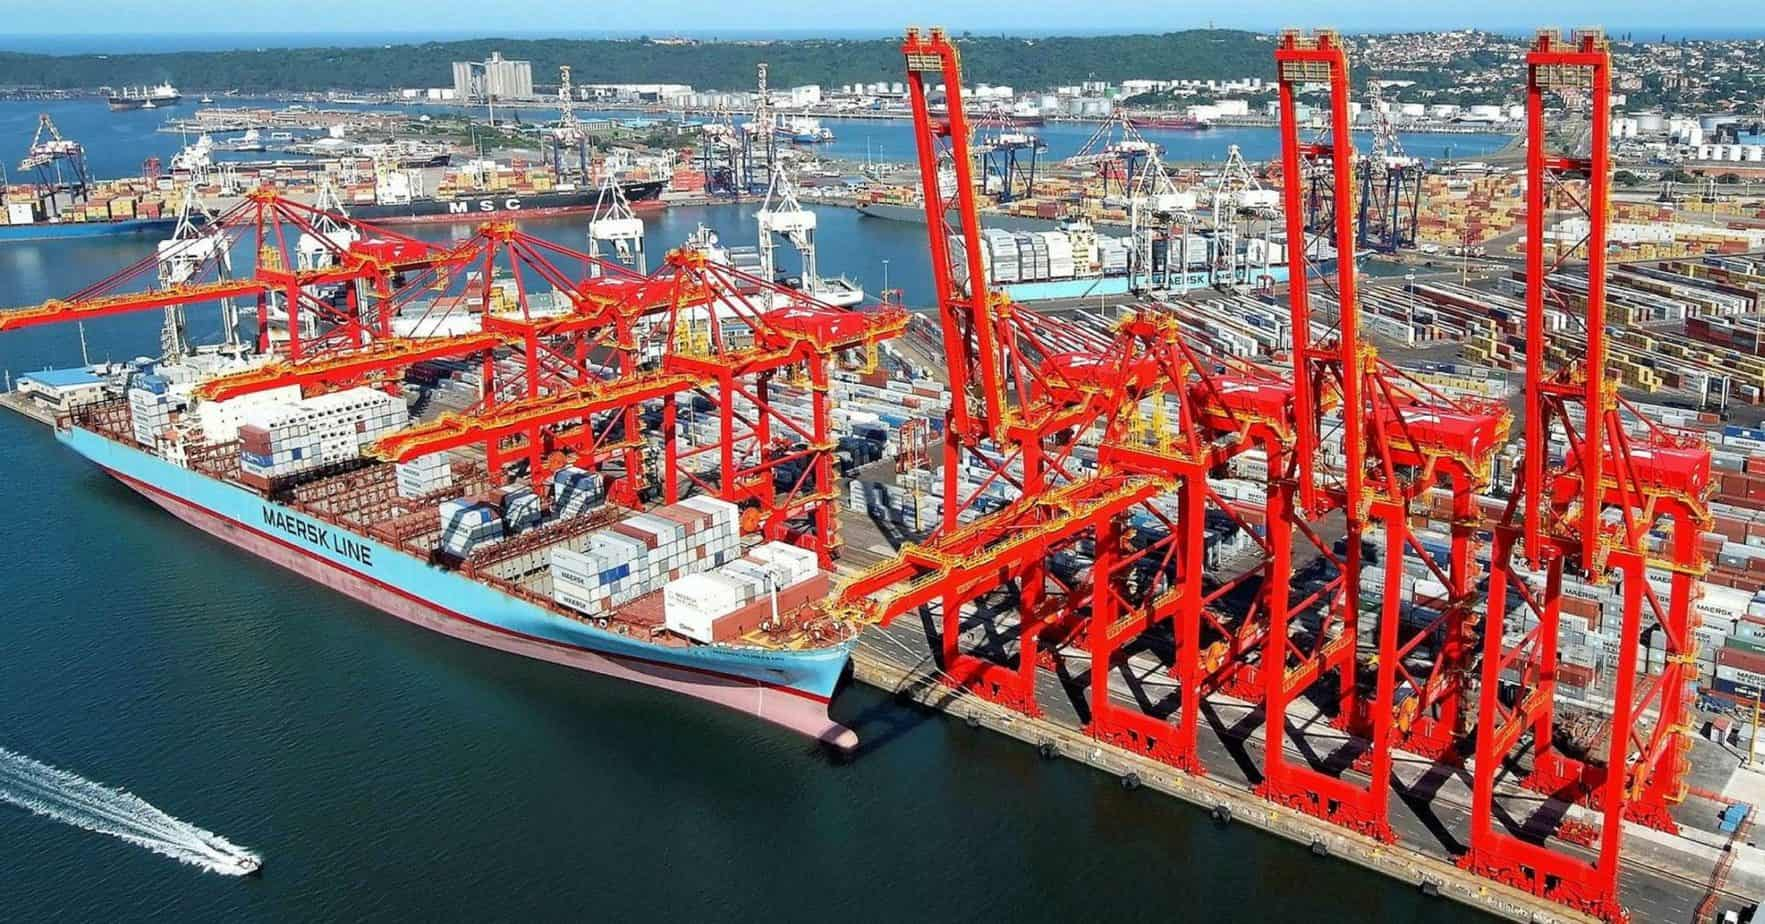 R100 billion will be needed to position Durban as a world-class port and as a hub port for the Southern Hemisphere. Photo: Supplied/Food For Mzansi